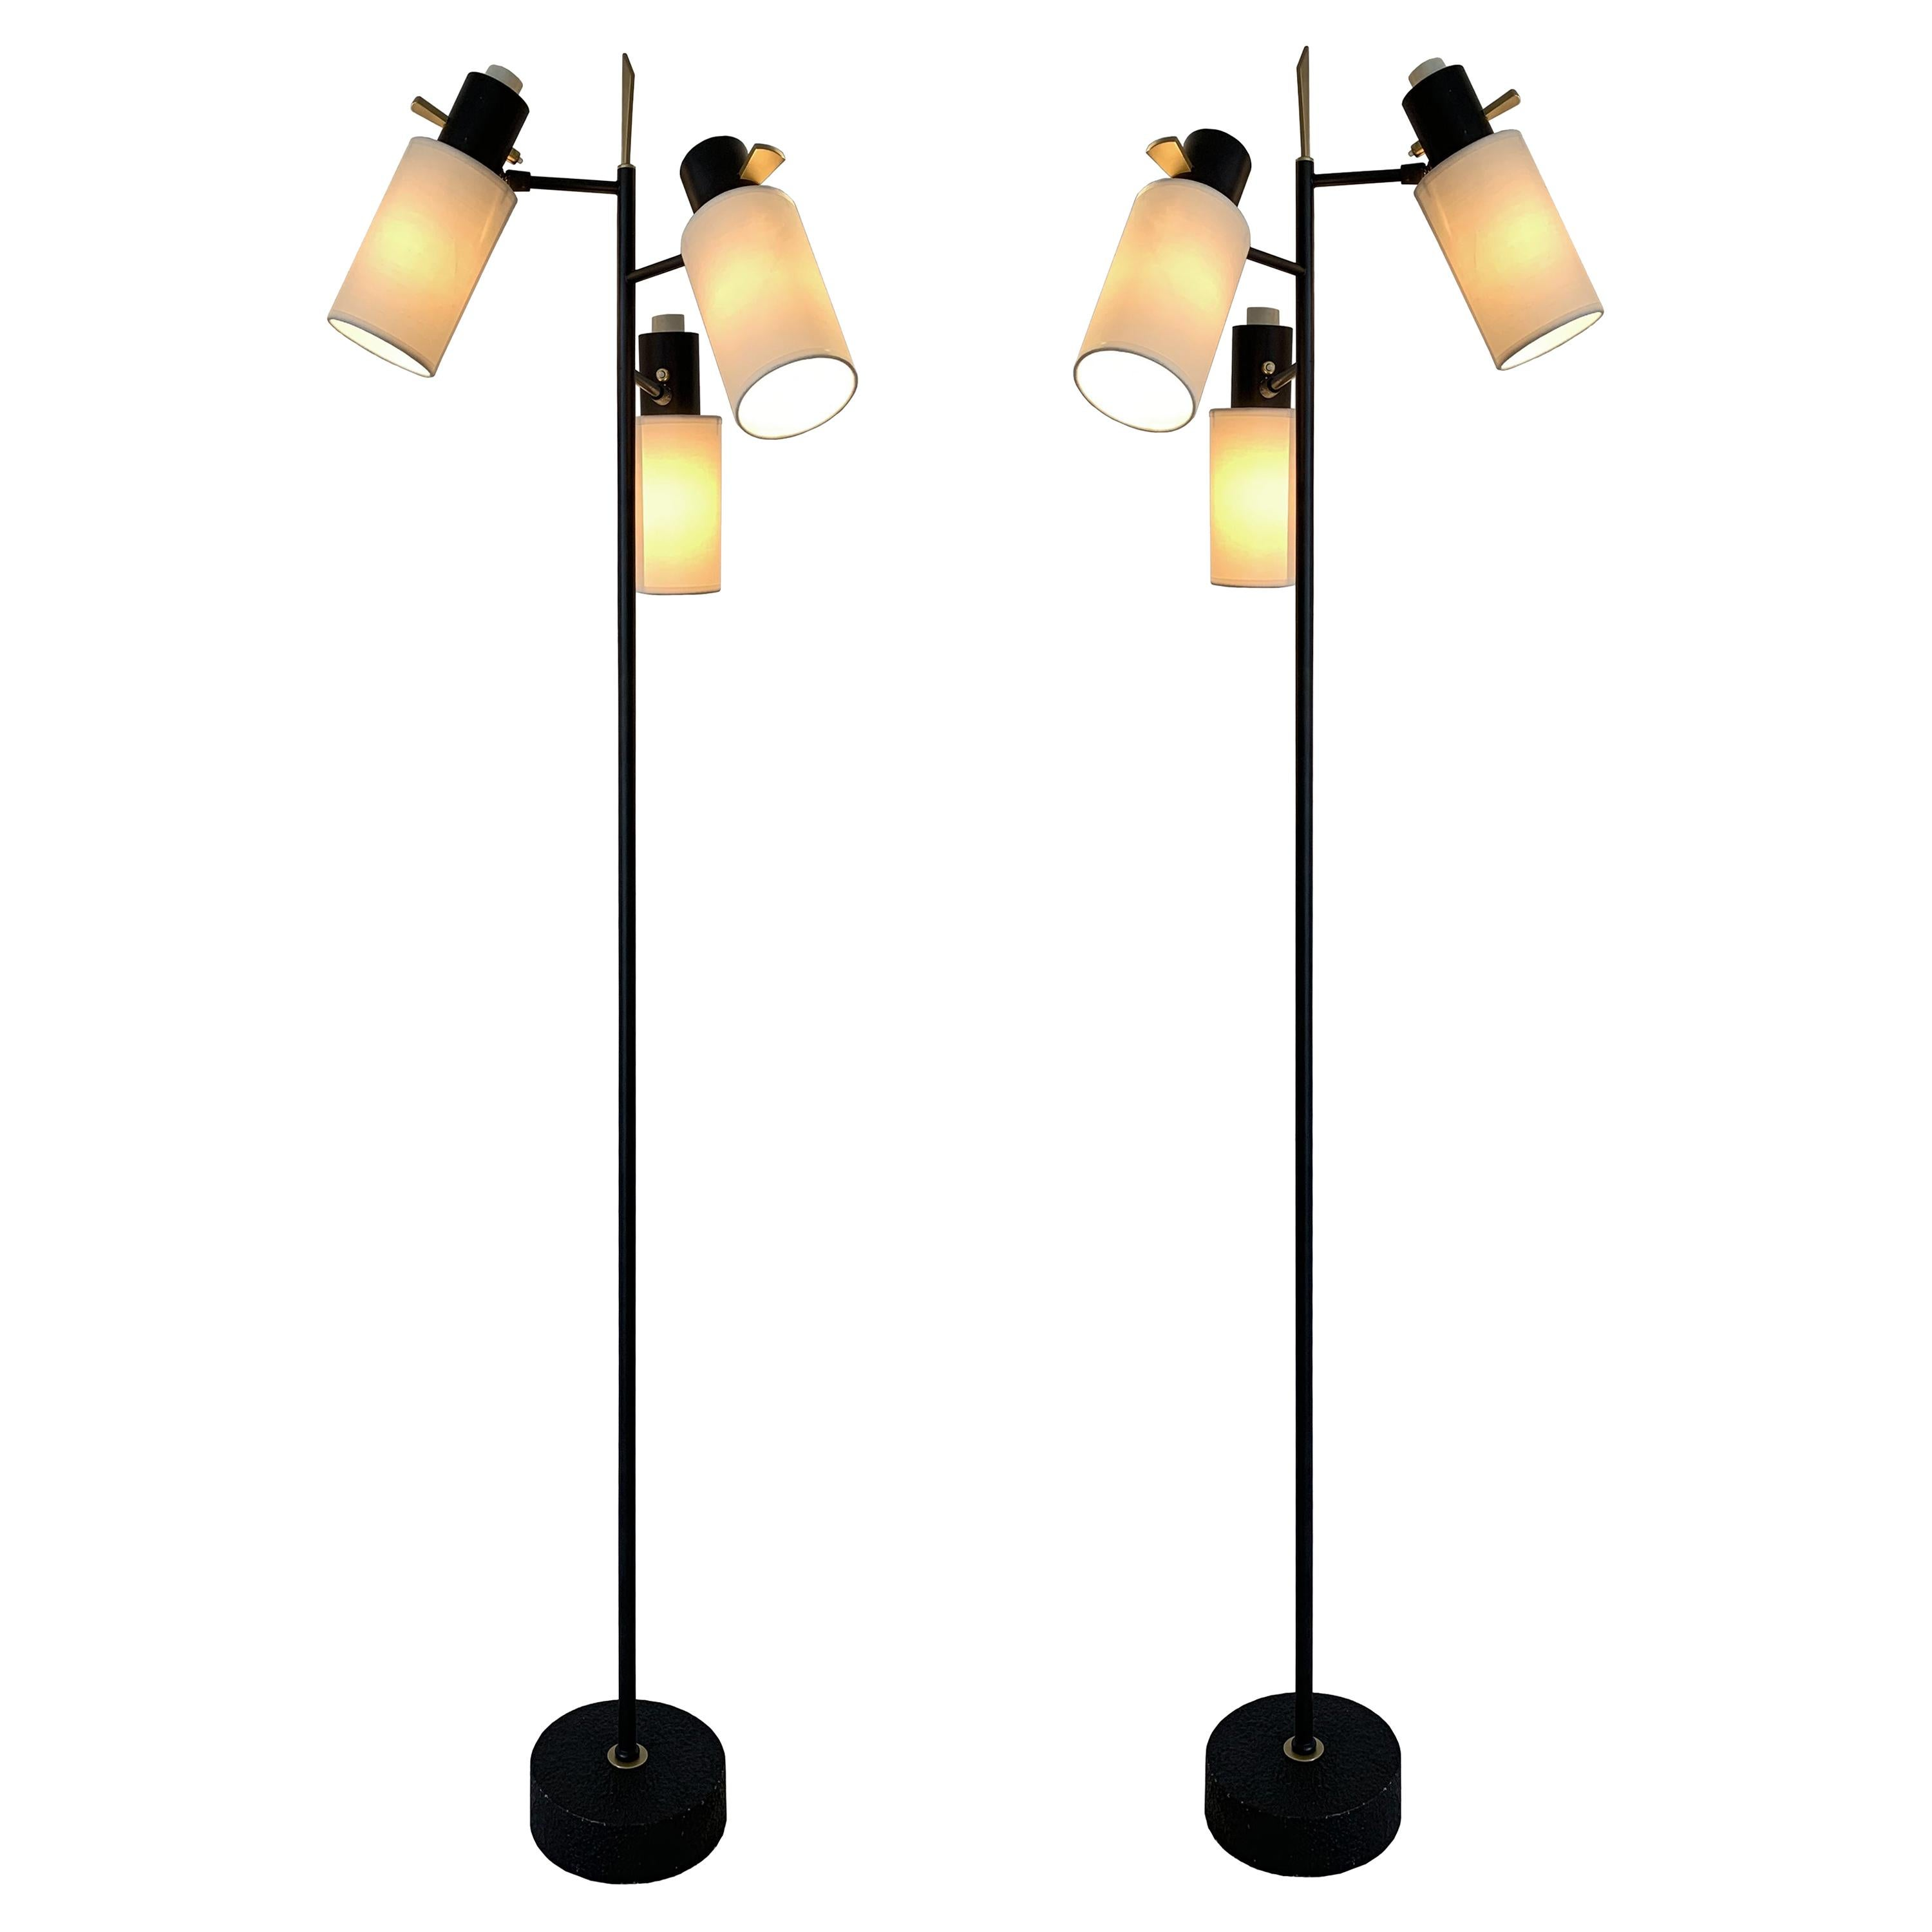 Pair of Floor Lamps by Maison Lunel, 1950